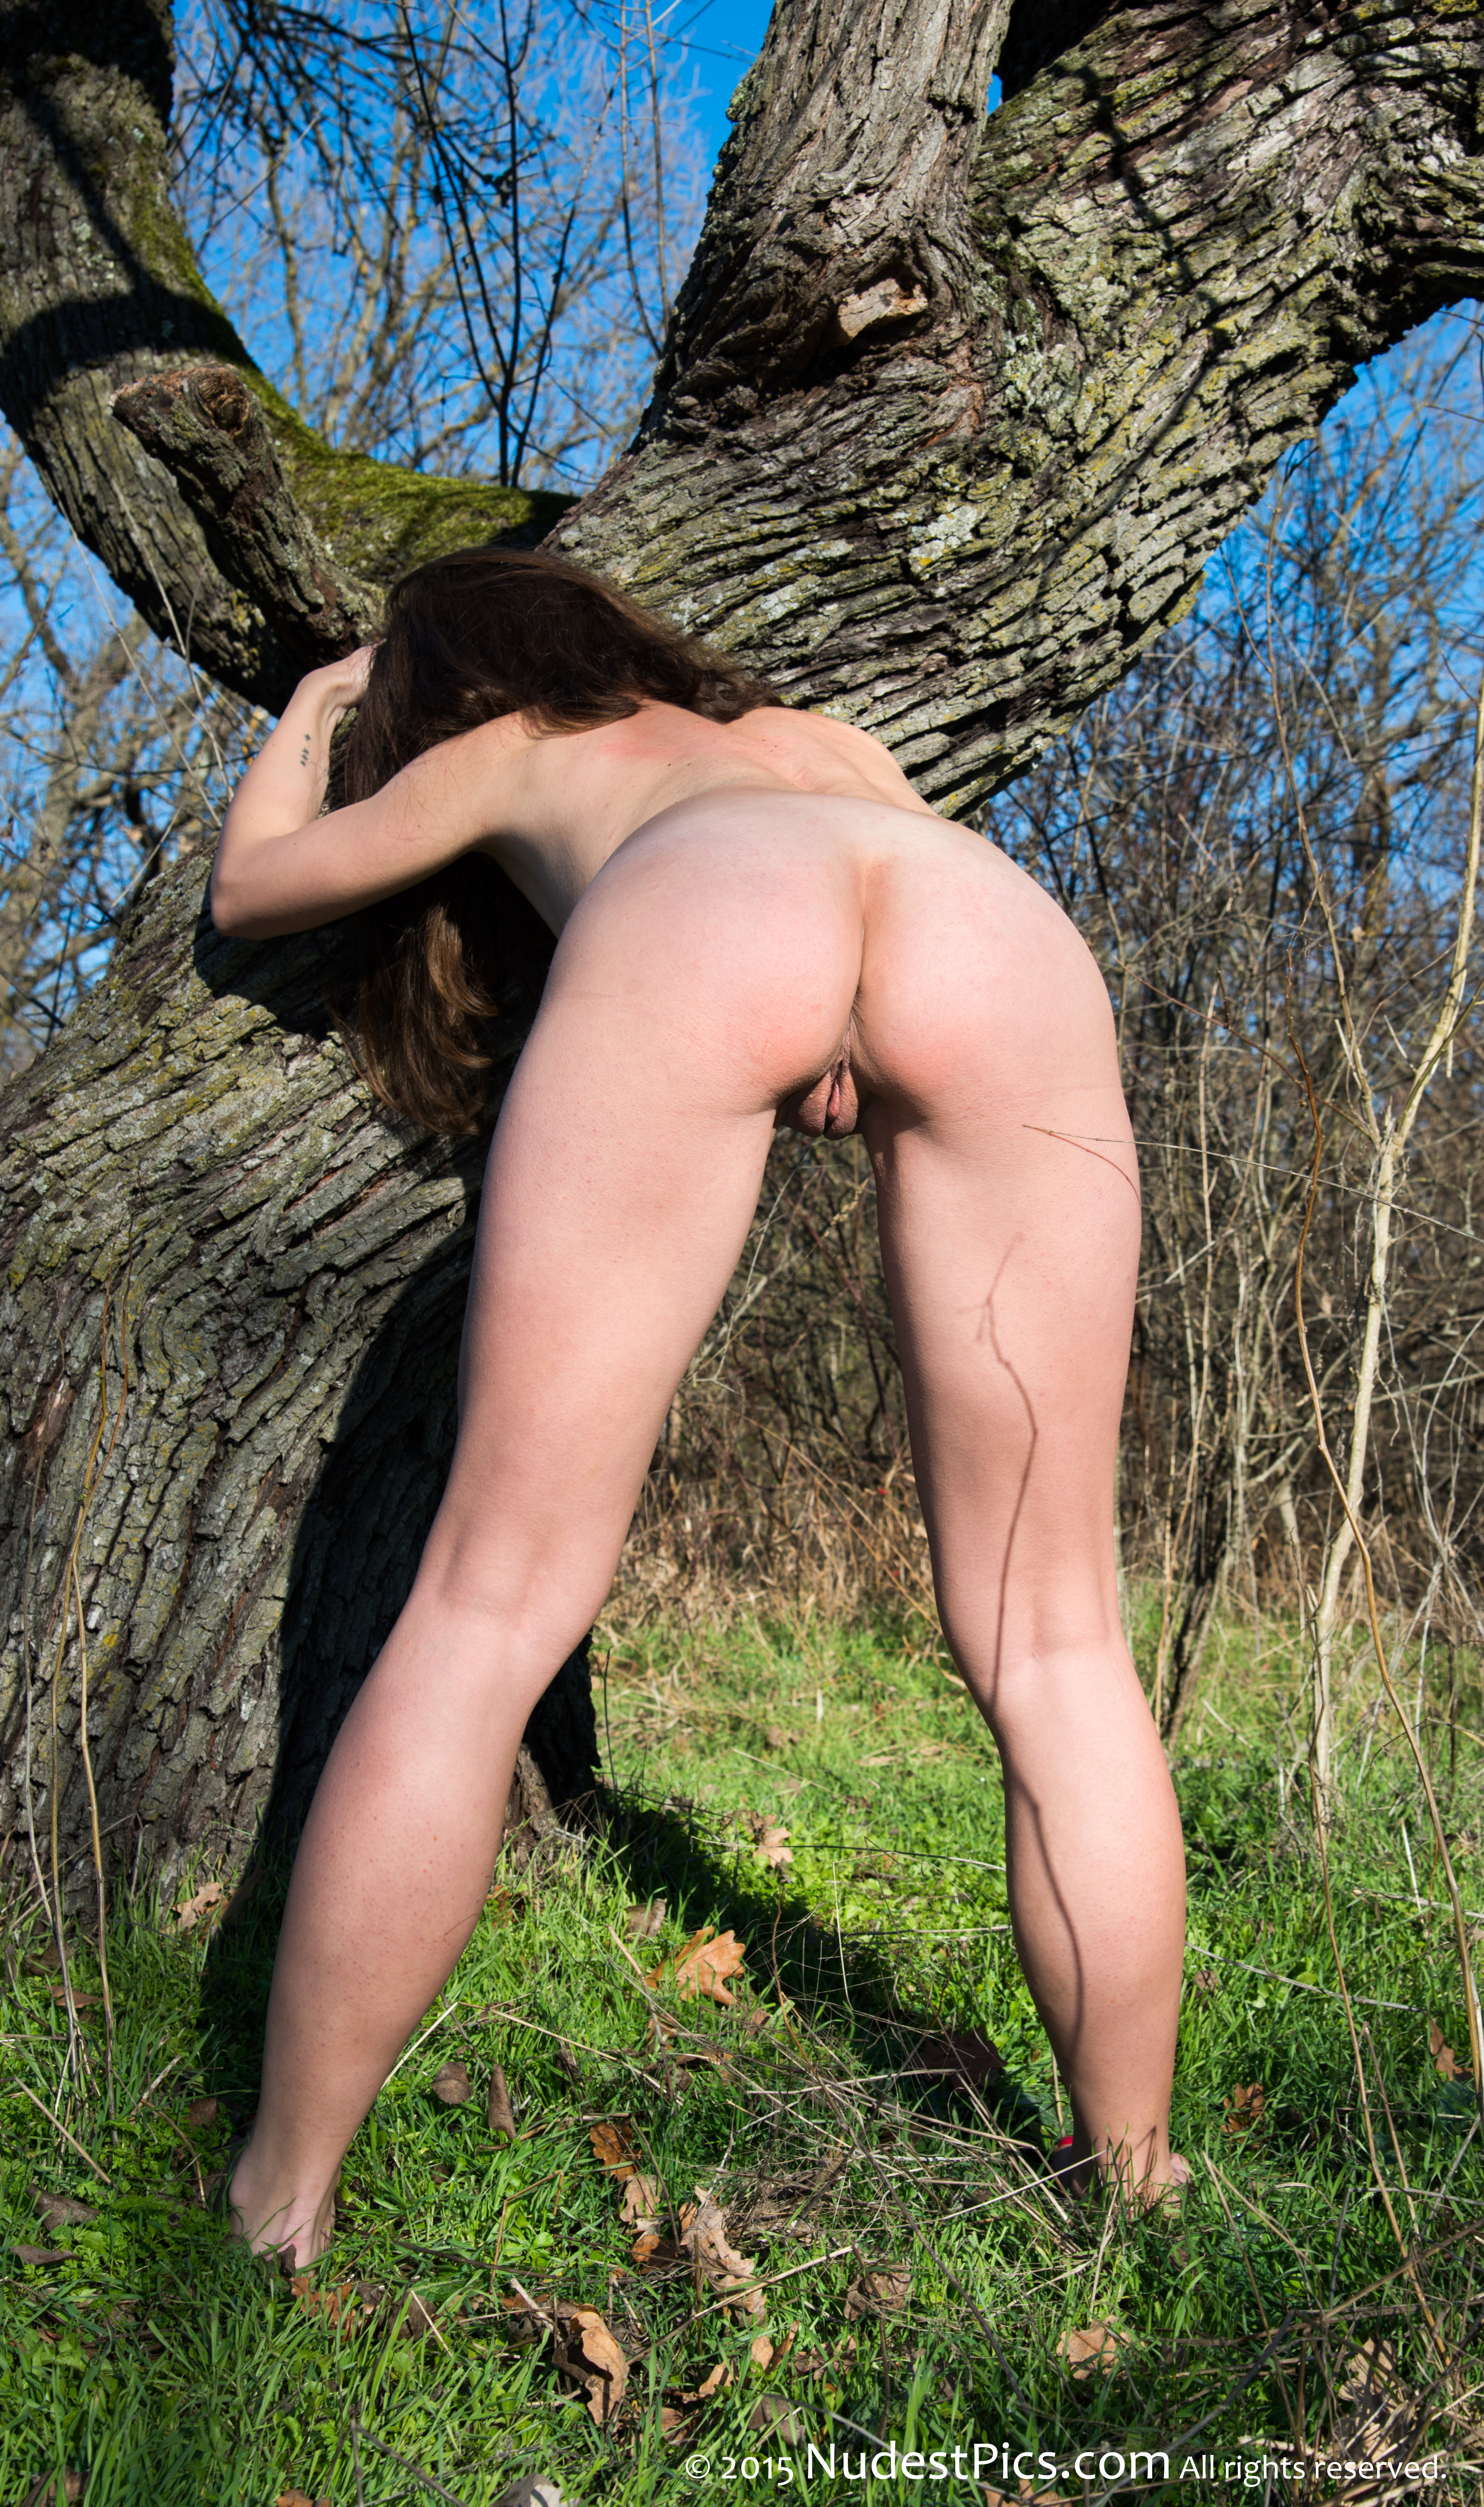 Naturist Girl Bends Over in the Forest